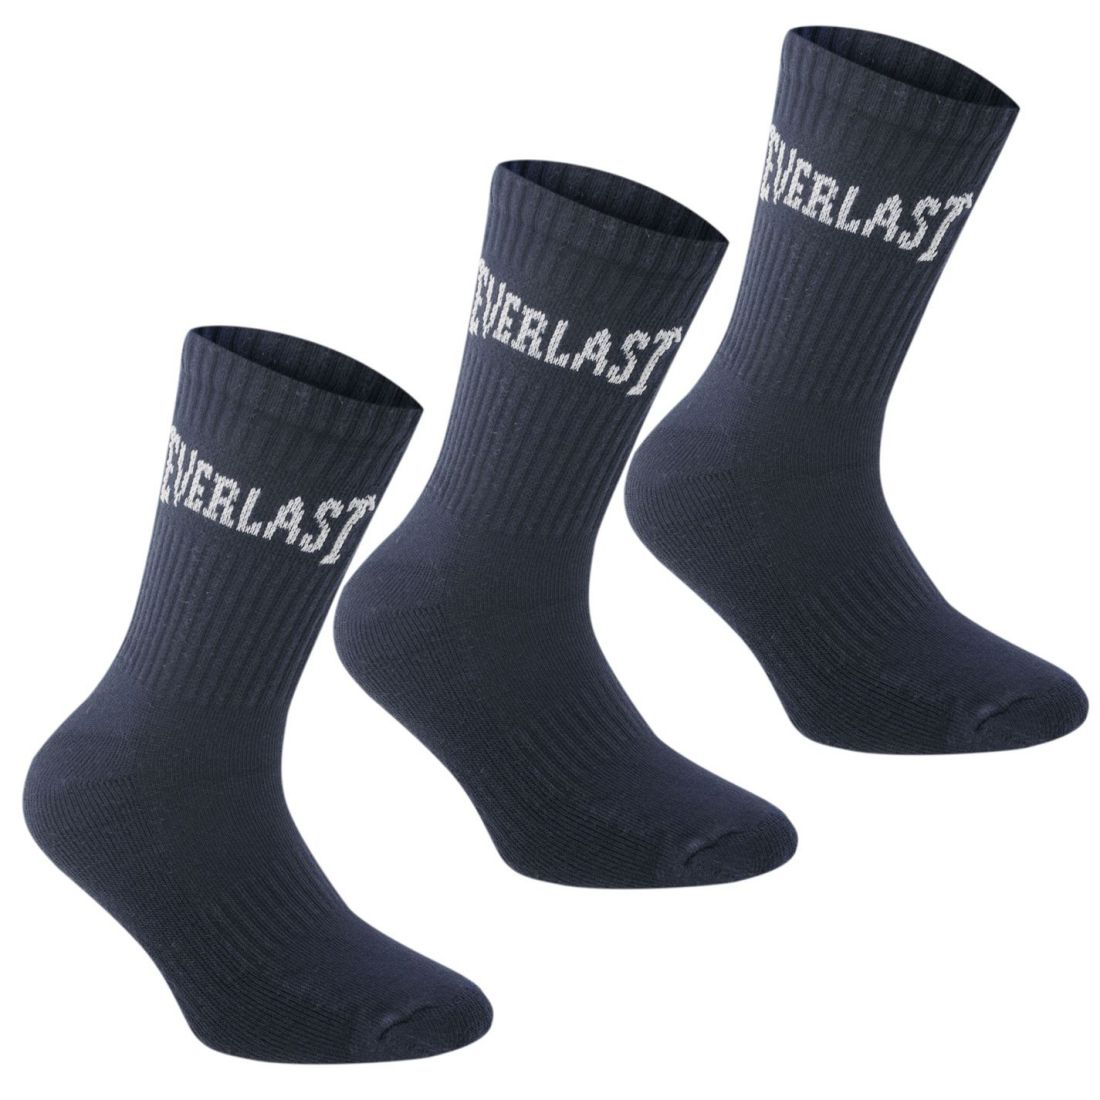 Everlast 3 Pack Crew Socks Youngster Childrens